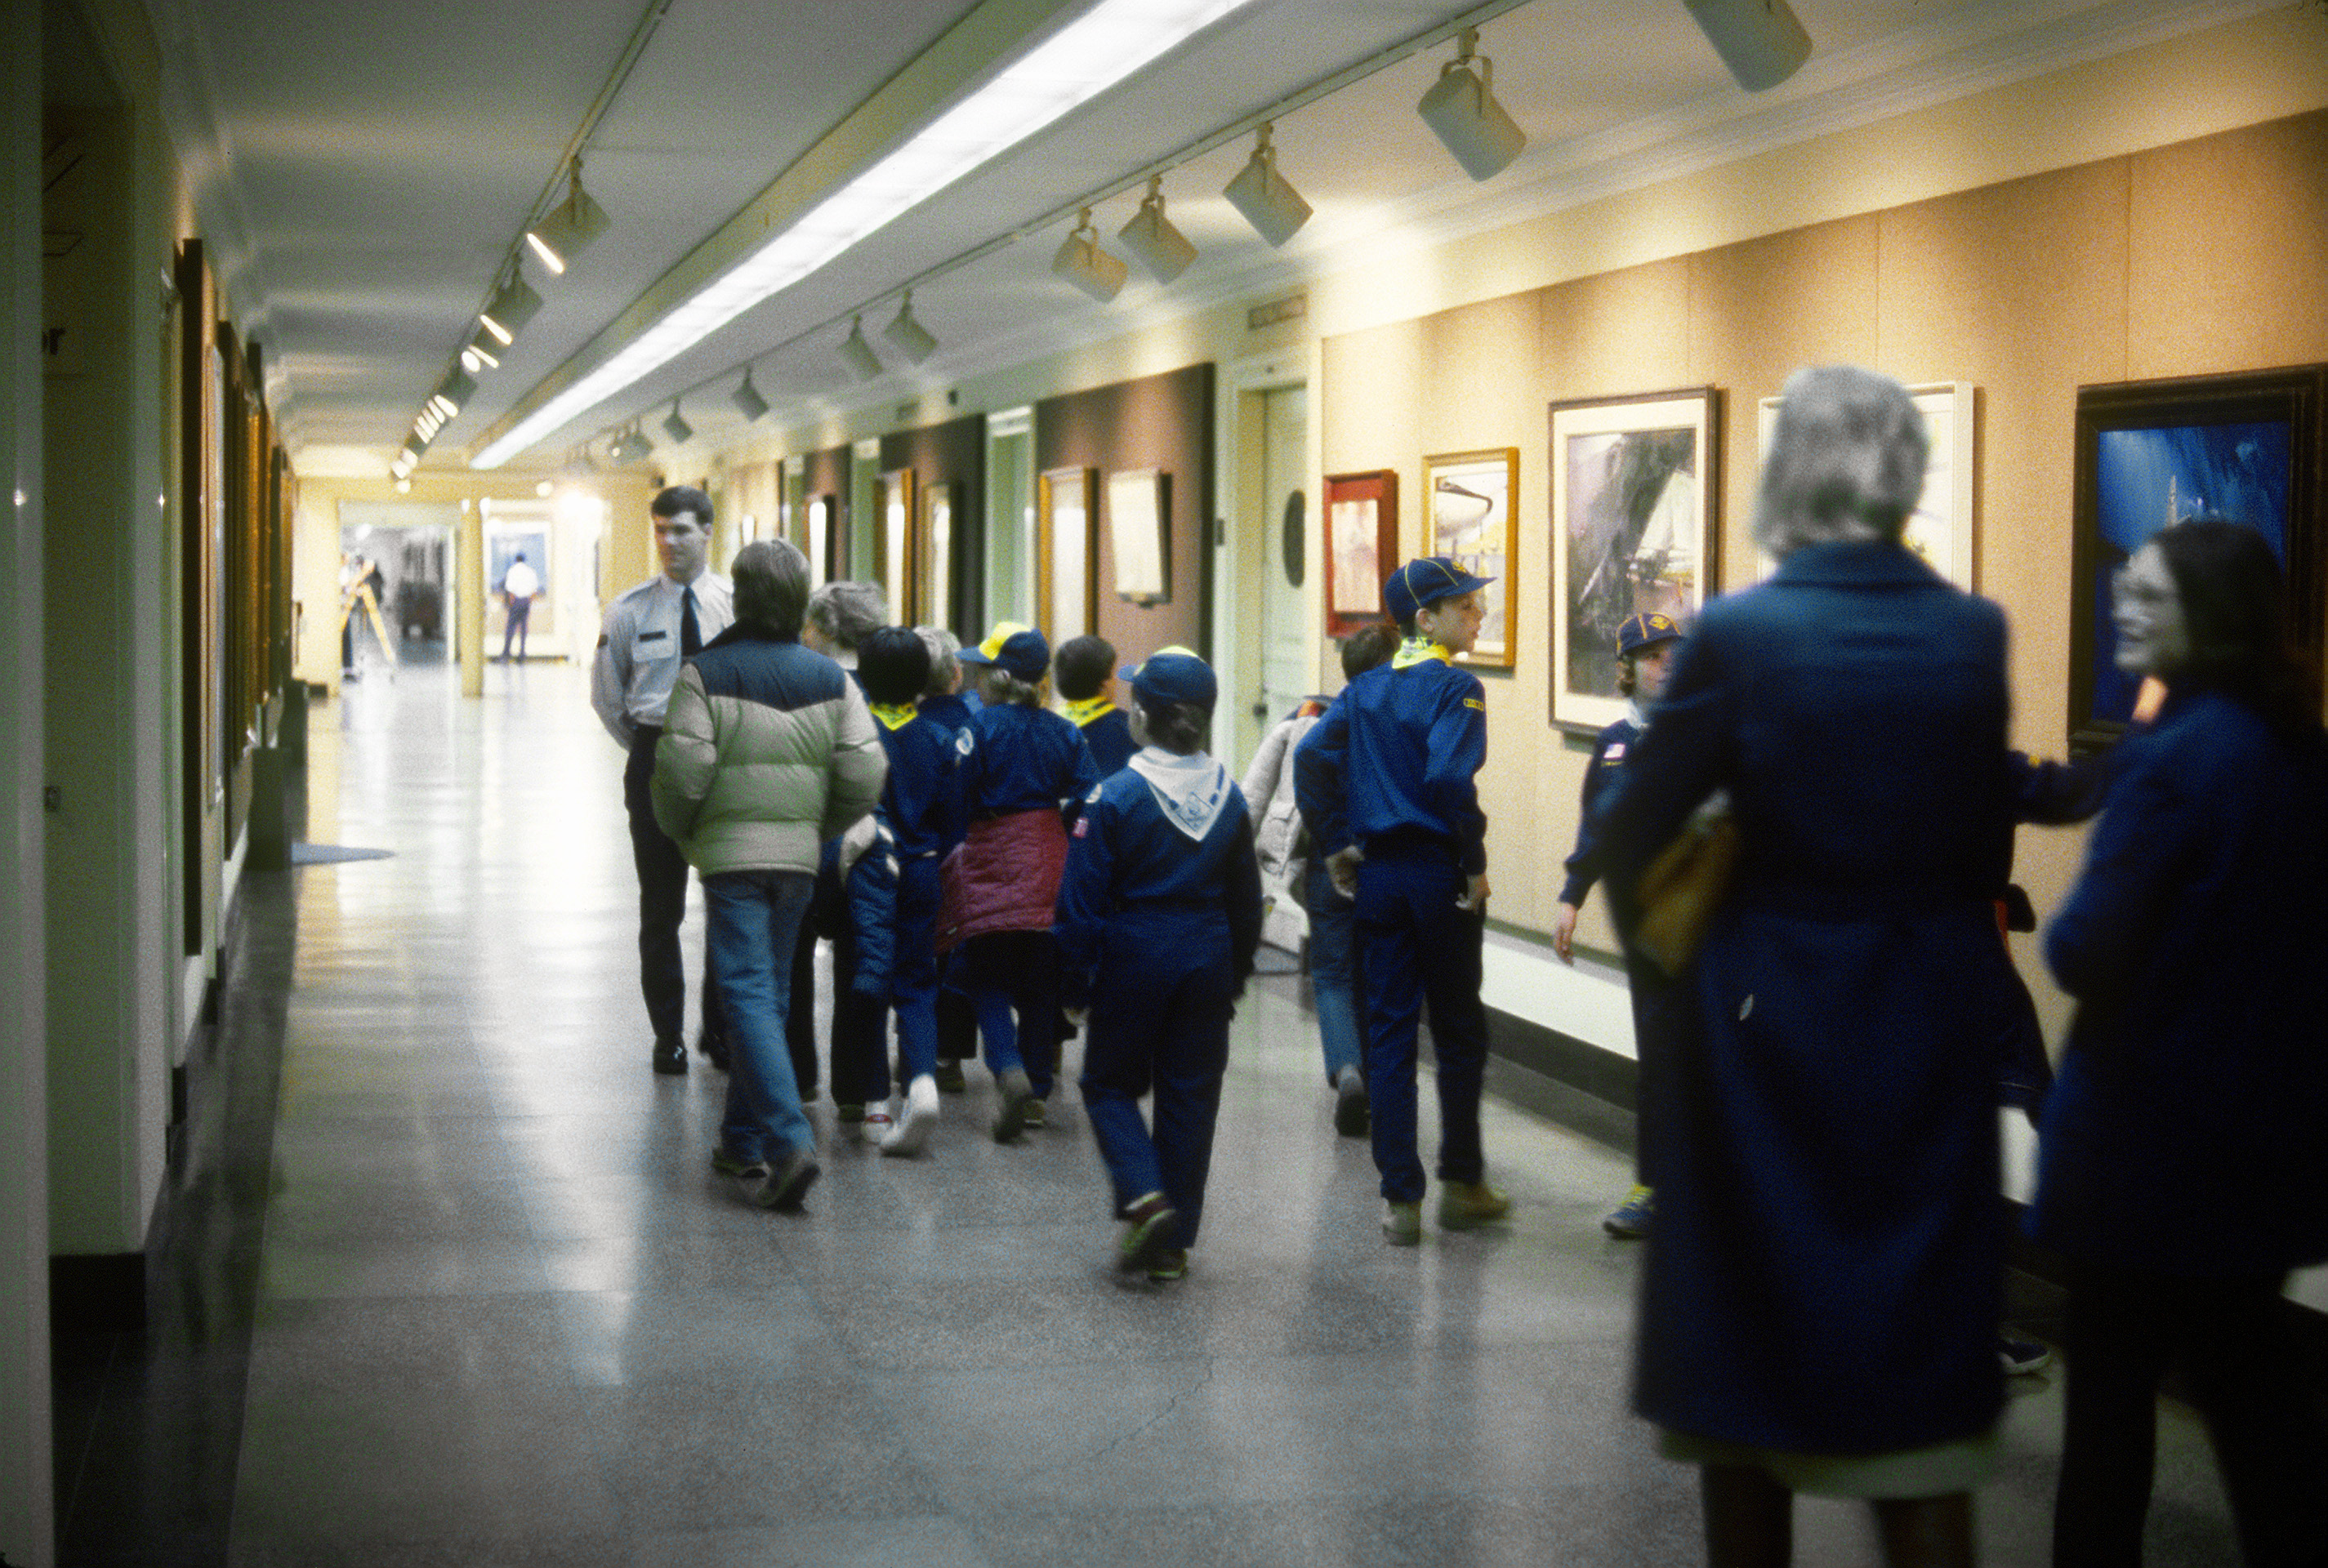 A U.S. Air Force guide explains a painting to Cub Scouts visiting Air Force art exhibitions in the Pentagon